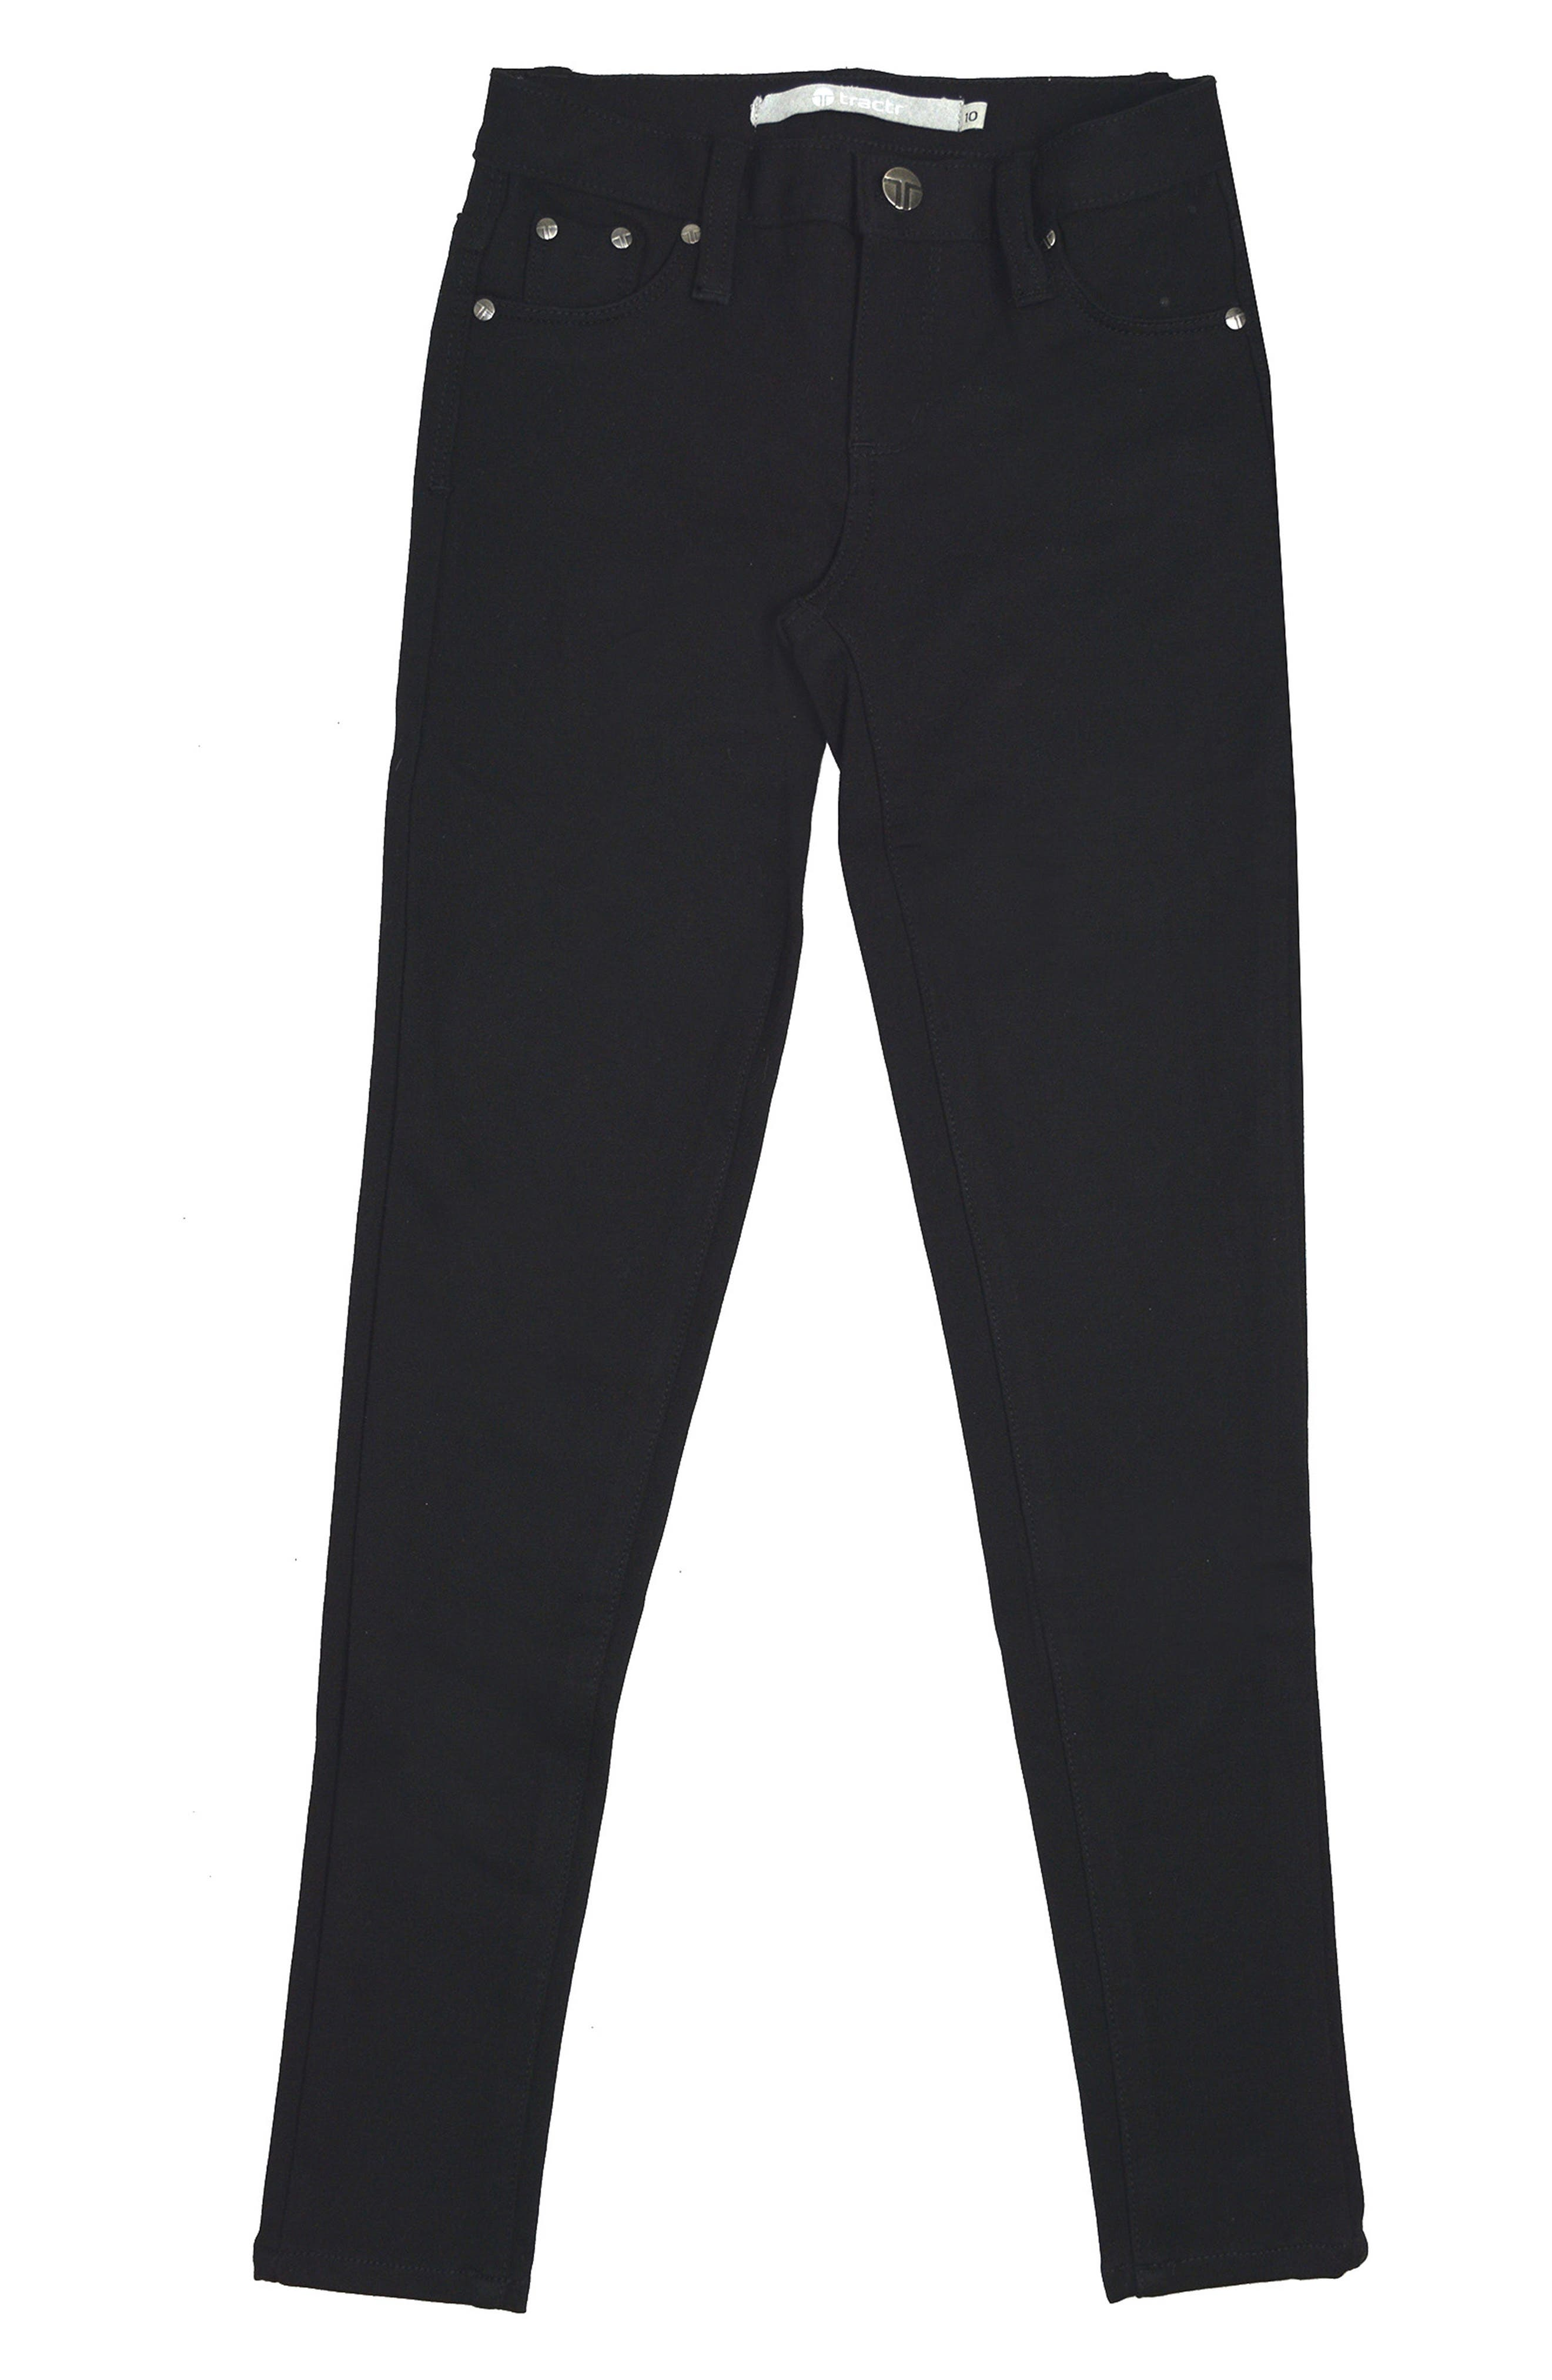 Main Image - Tractr Ponte Skinny Jeans (Little Girls)